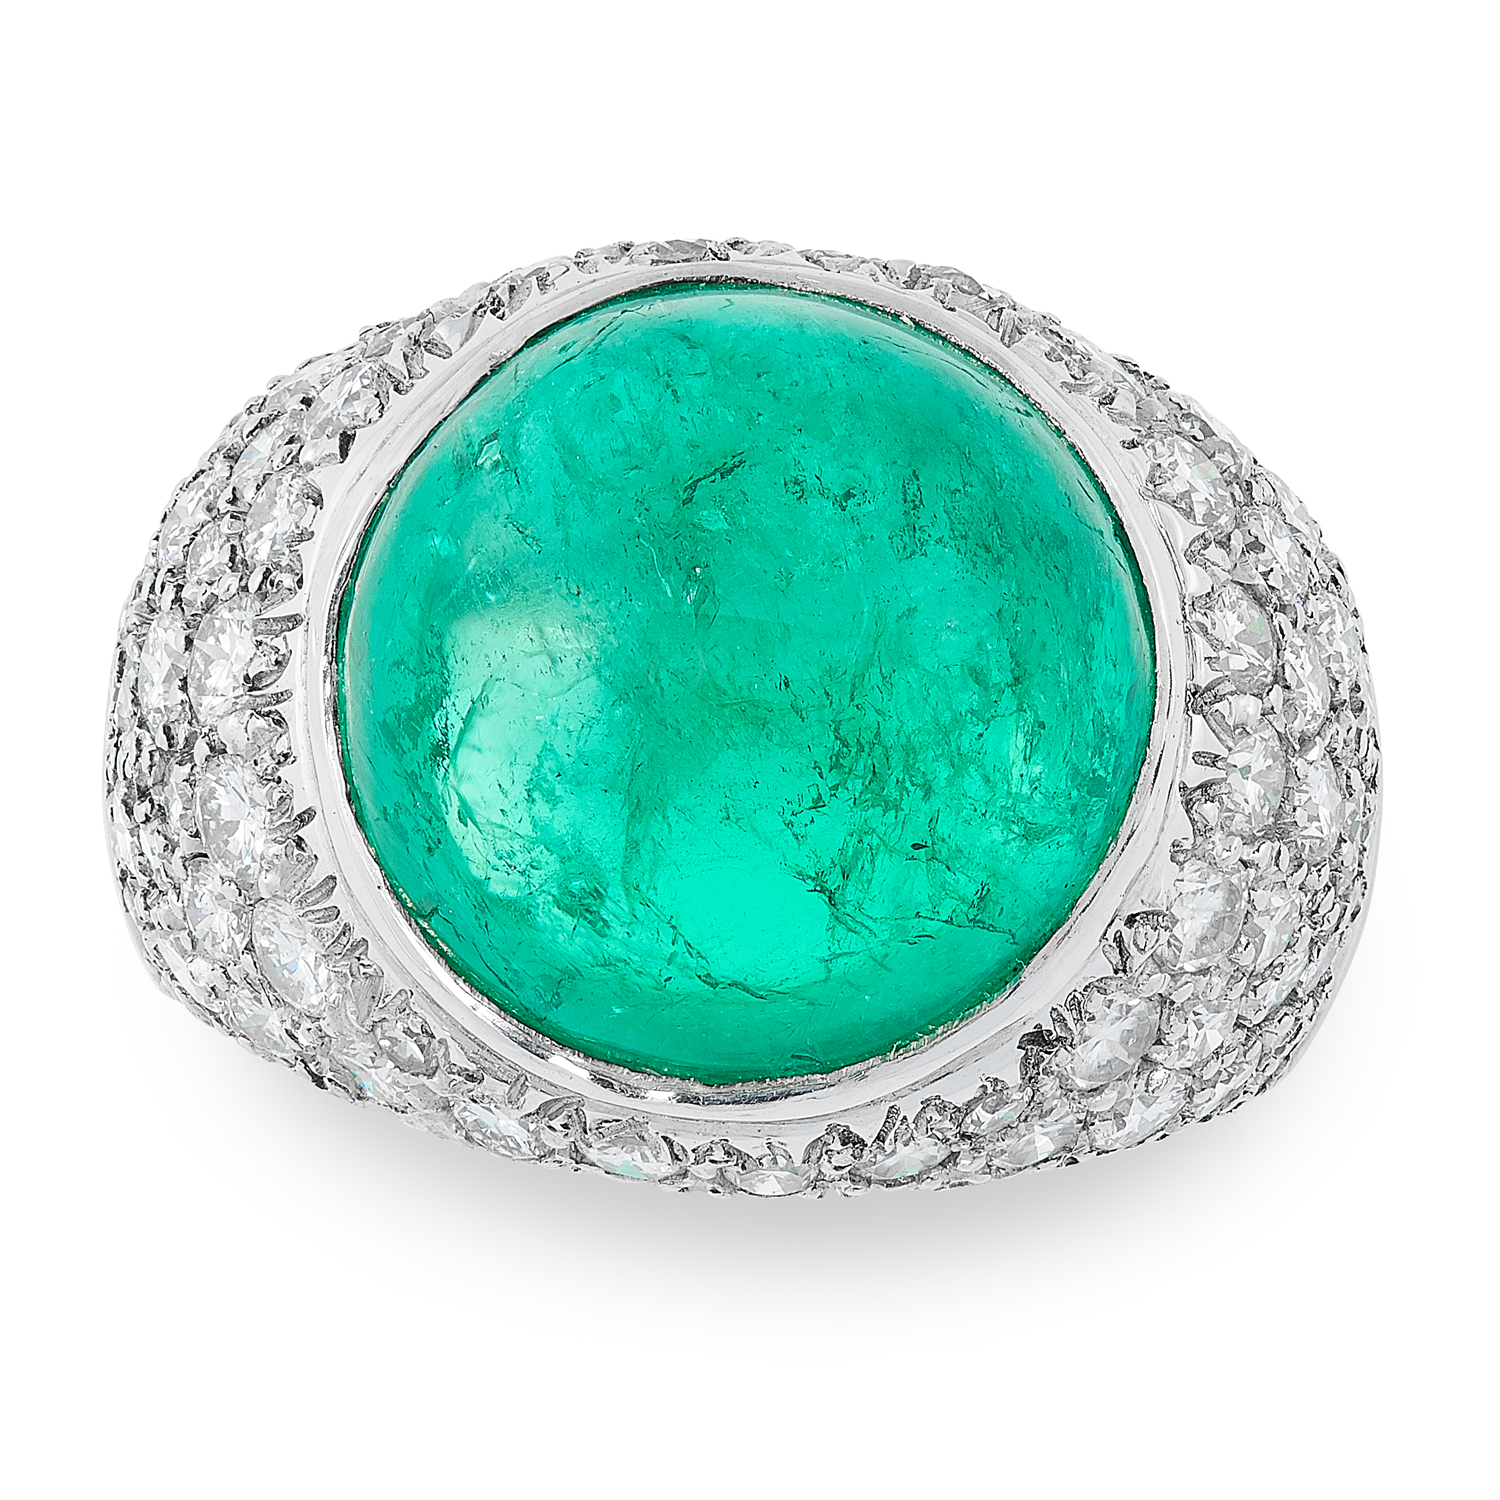 A COLOMBIAN EMERALD AND DIAMOND RING CIRCA 1980 in platinum, set with a circular cabochon emerald of